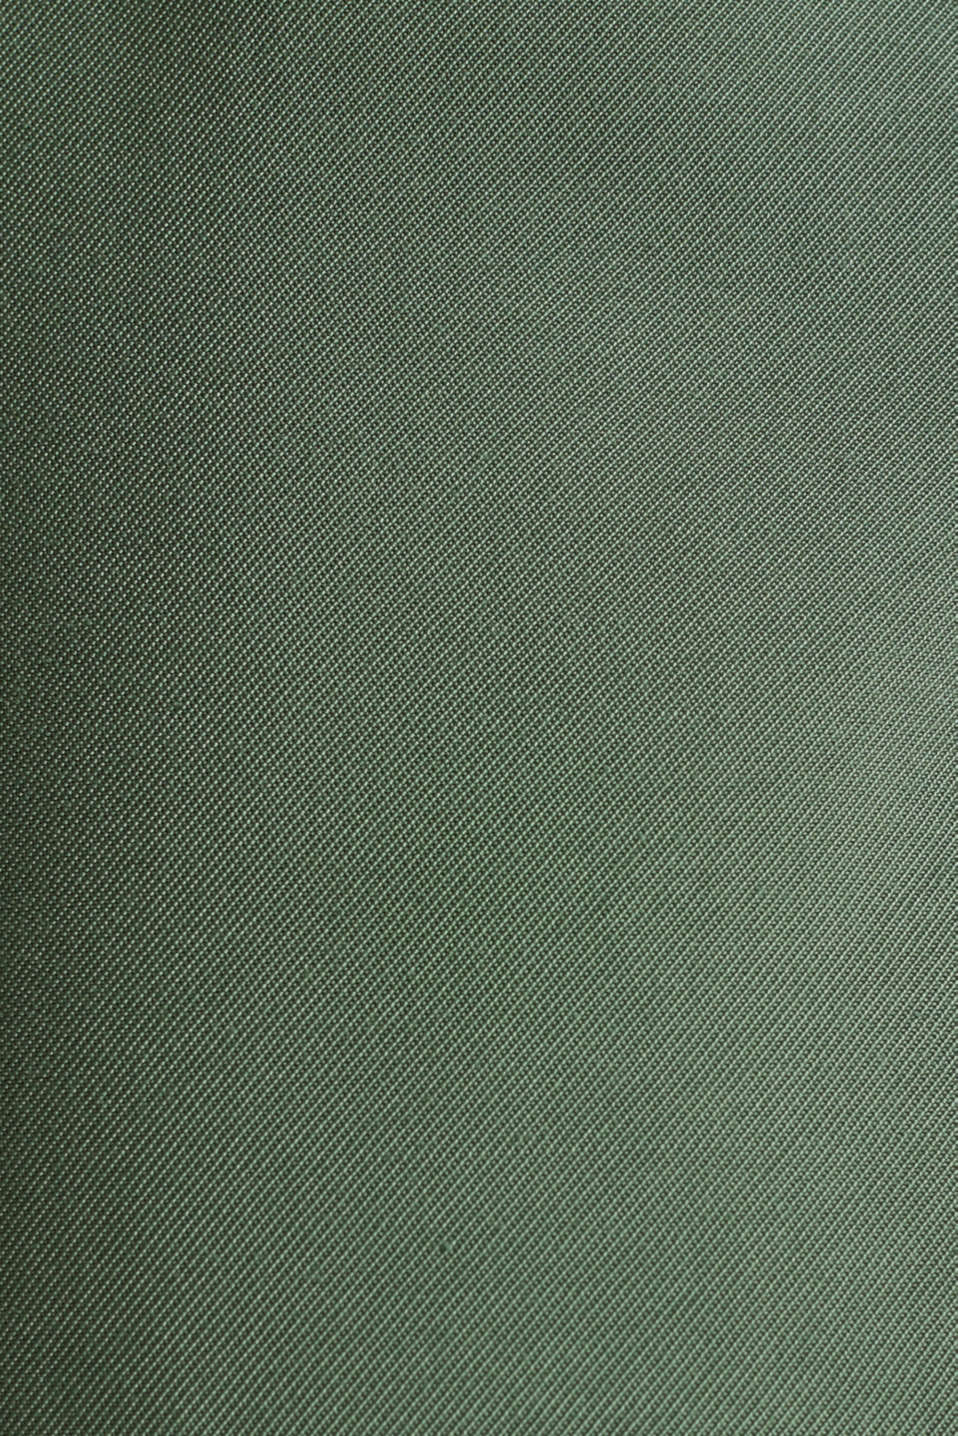 Tracksuit bottoms in a utility look, KHAKI GREEN, detail image number 4